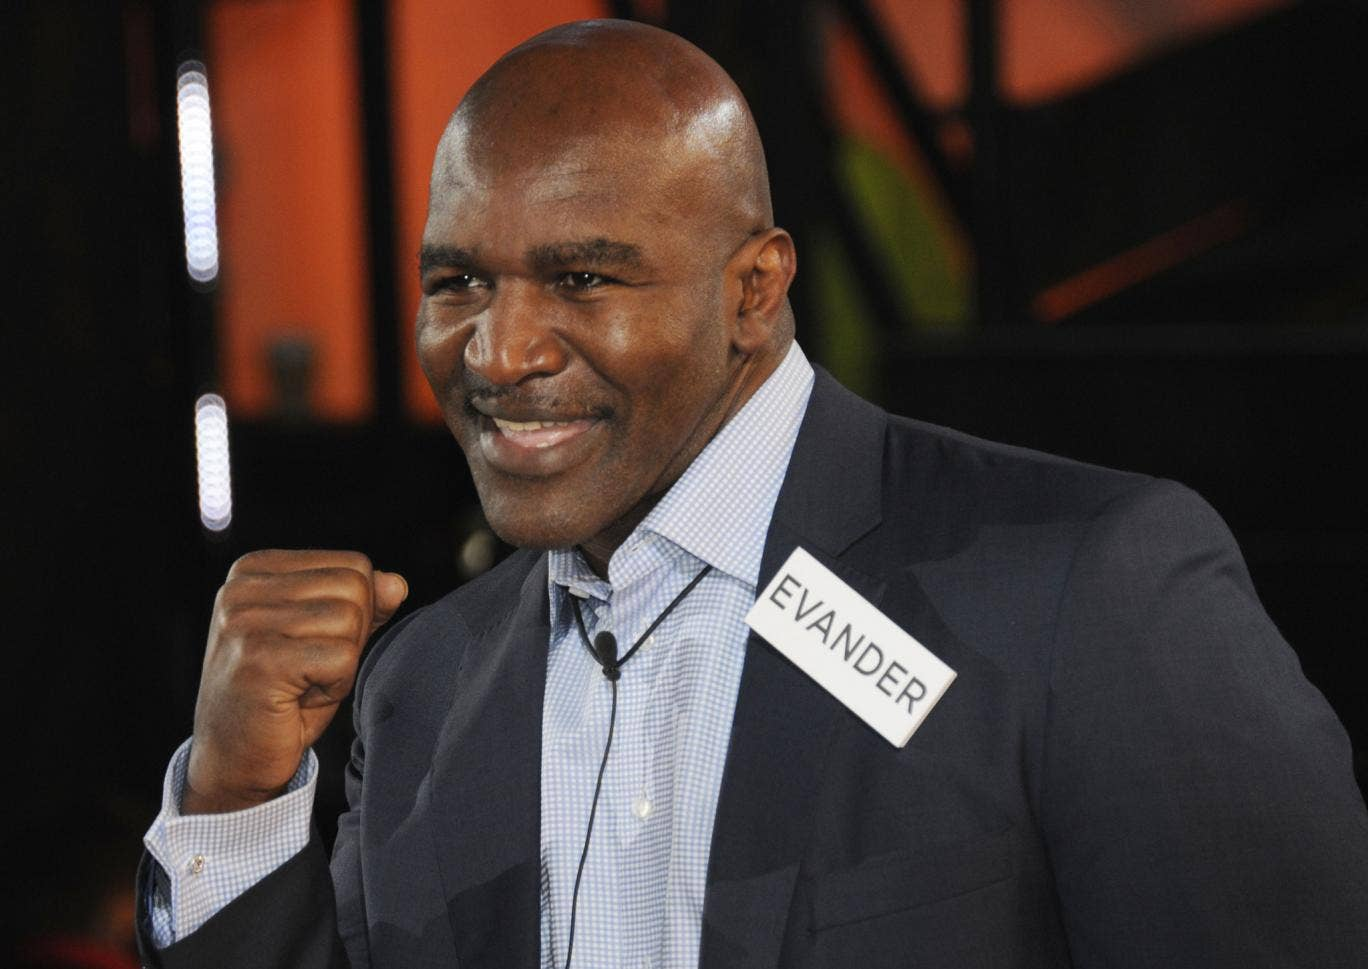 Evander Holyfield sparked controversy shortly after entering the Celebrity Big Brother house